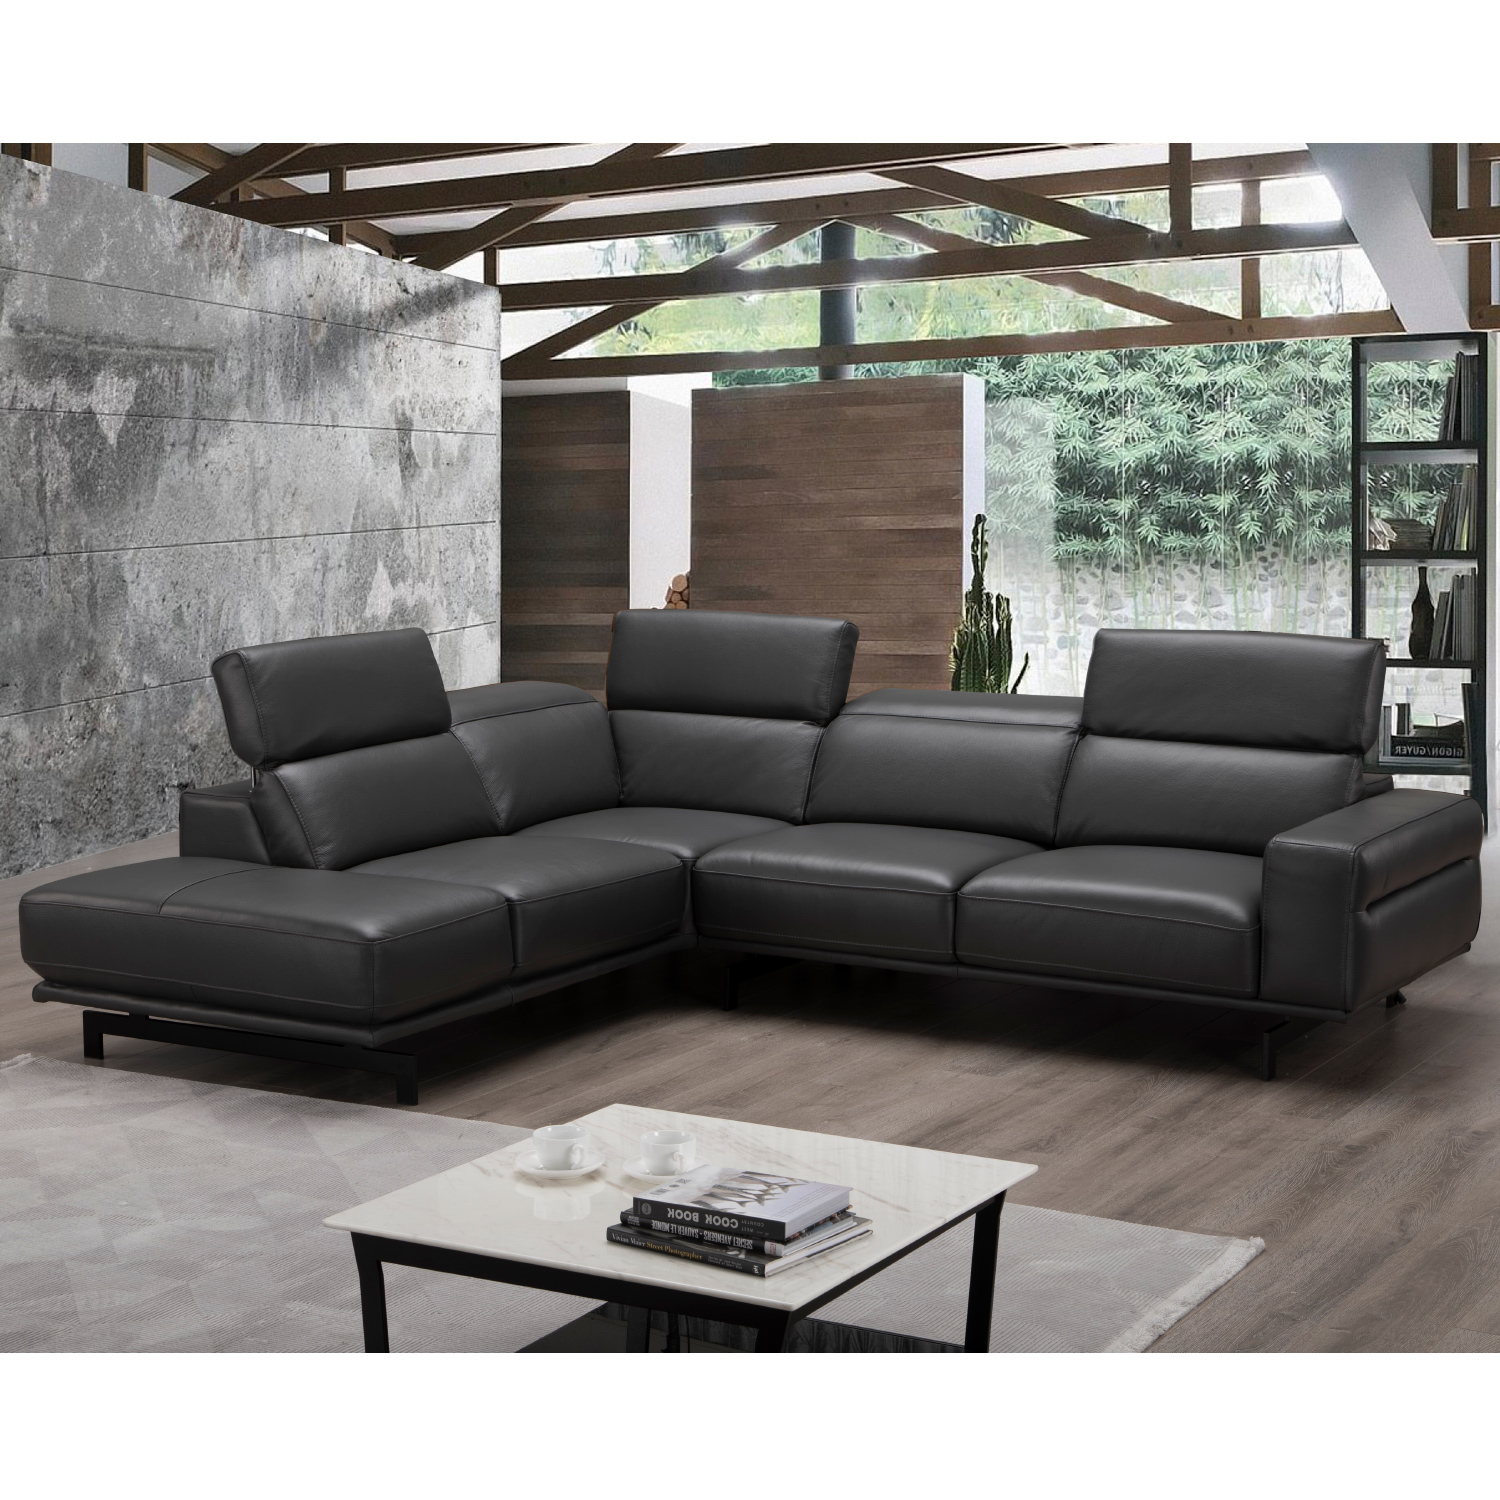 Davenport Sectional Sofa W Left Facing Chaise In Slate Grey Top Grain Leather By J And M Furniture